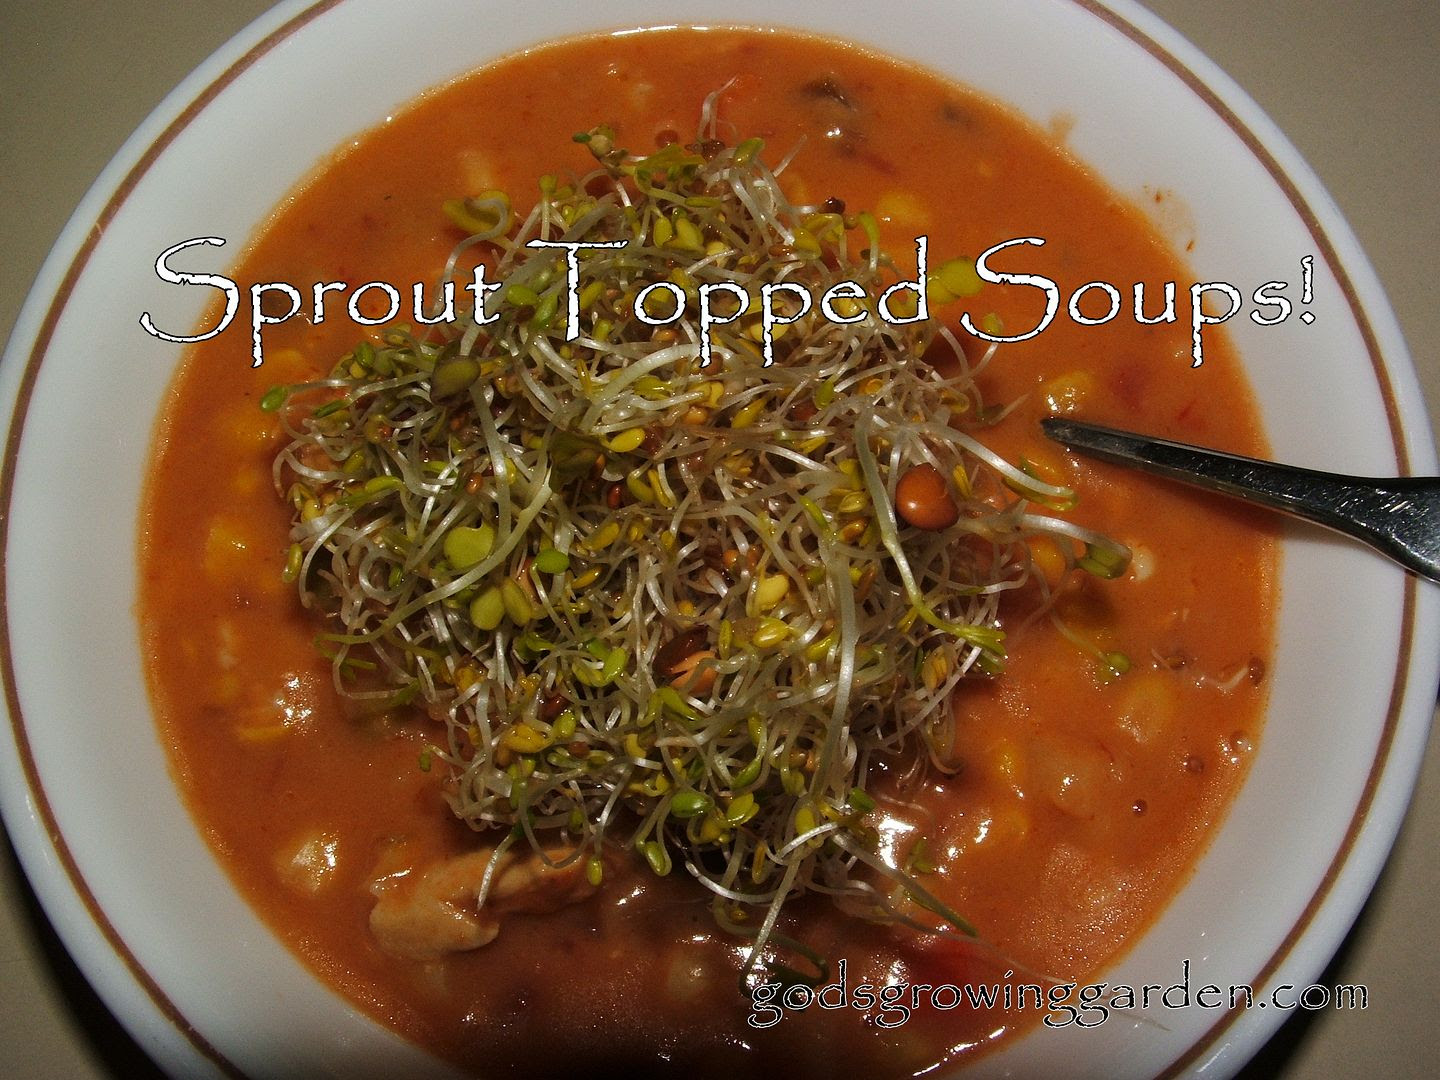 Sprout topped soups by Angie Ouellette-Tower for godsgrowinggarden.com photo 005_zps35fd9c0e.jpg